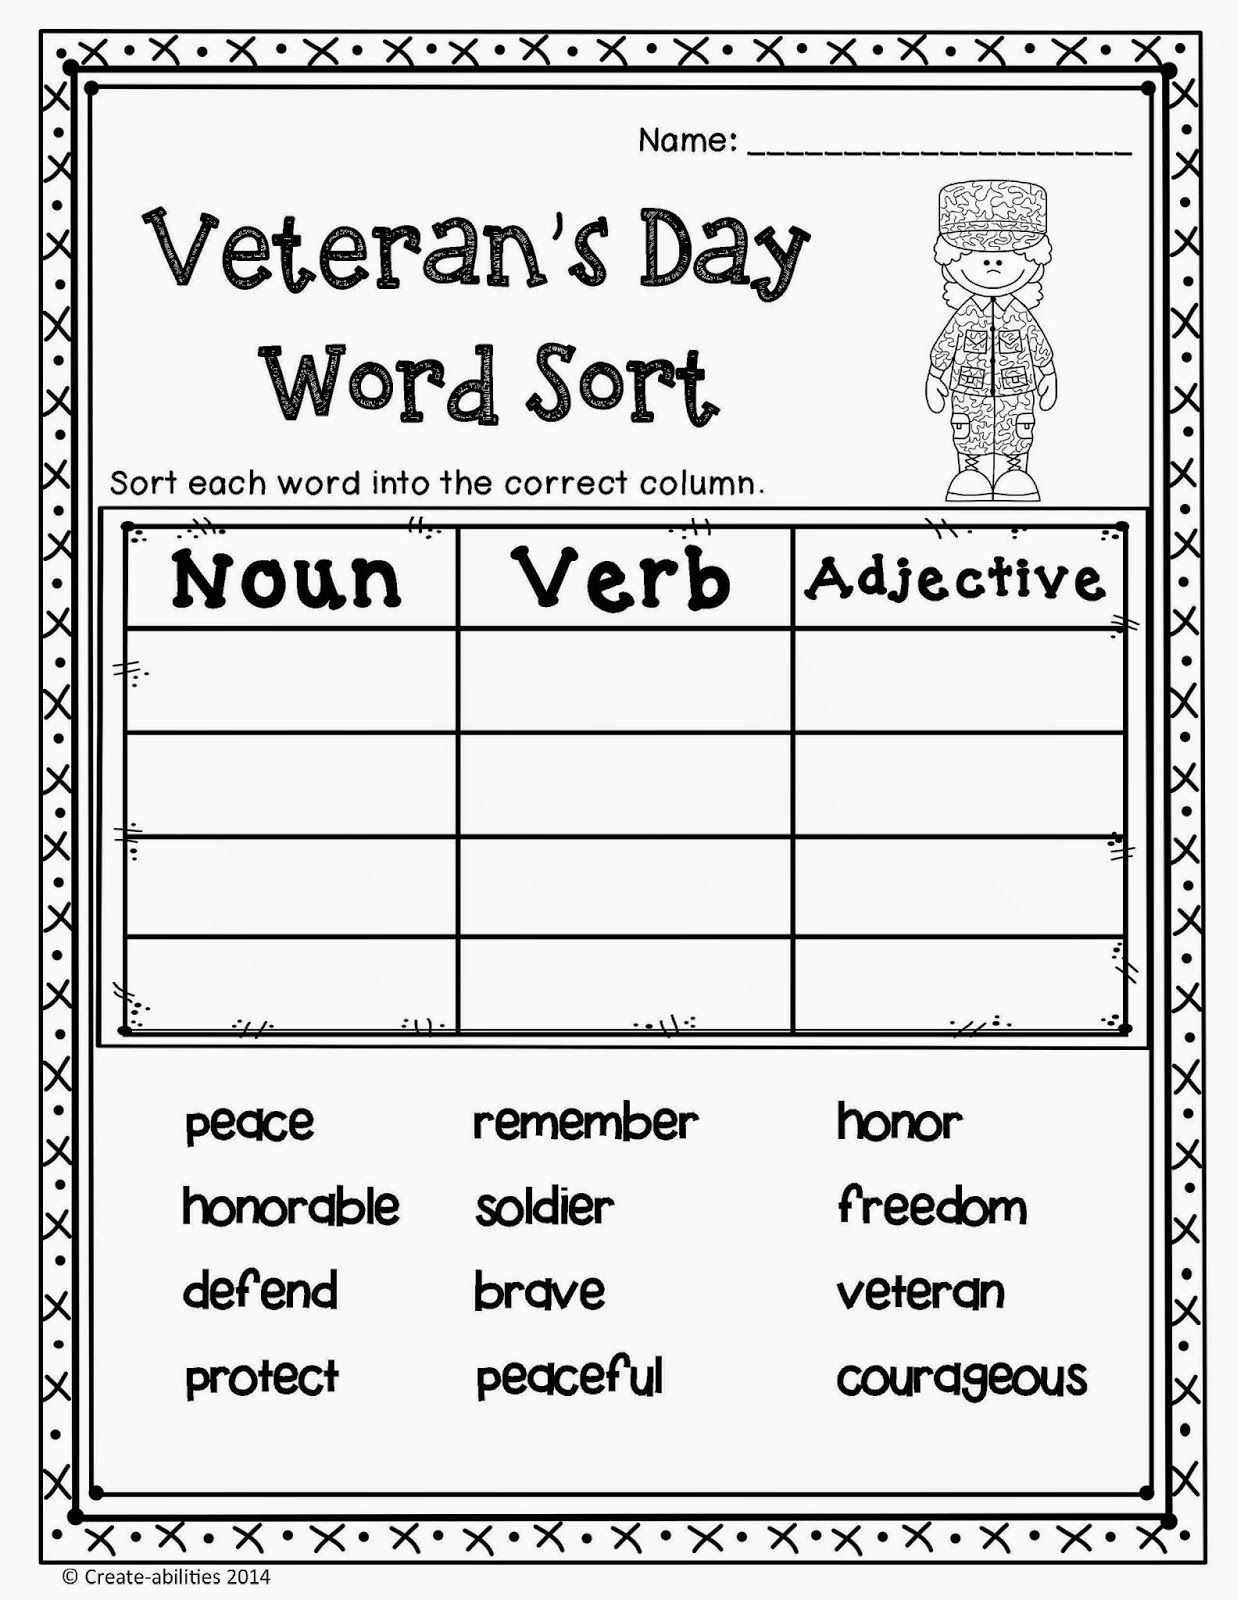 Free Veterans Day Activities For Kids – Free Veterans Day Worksheets